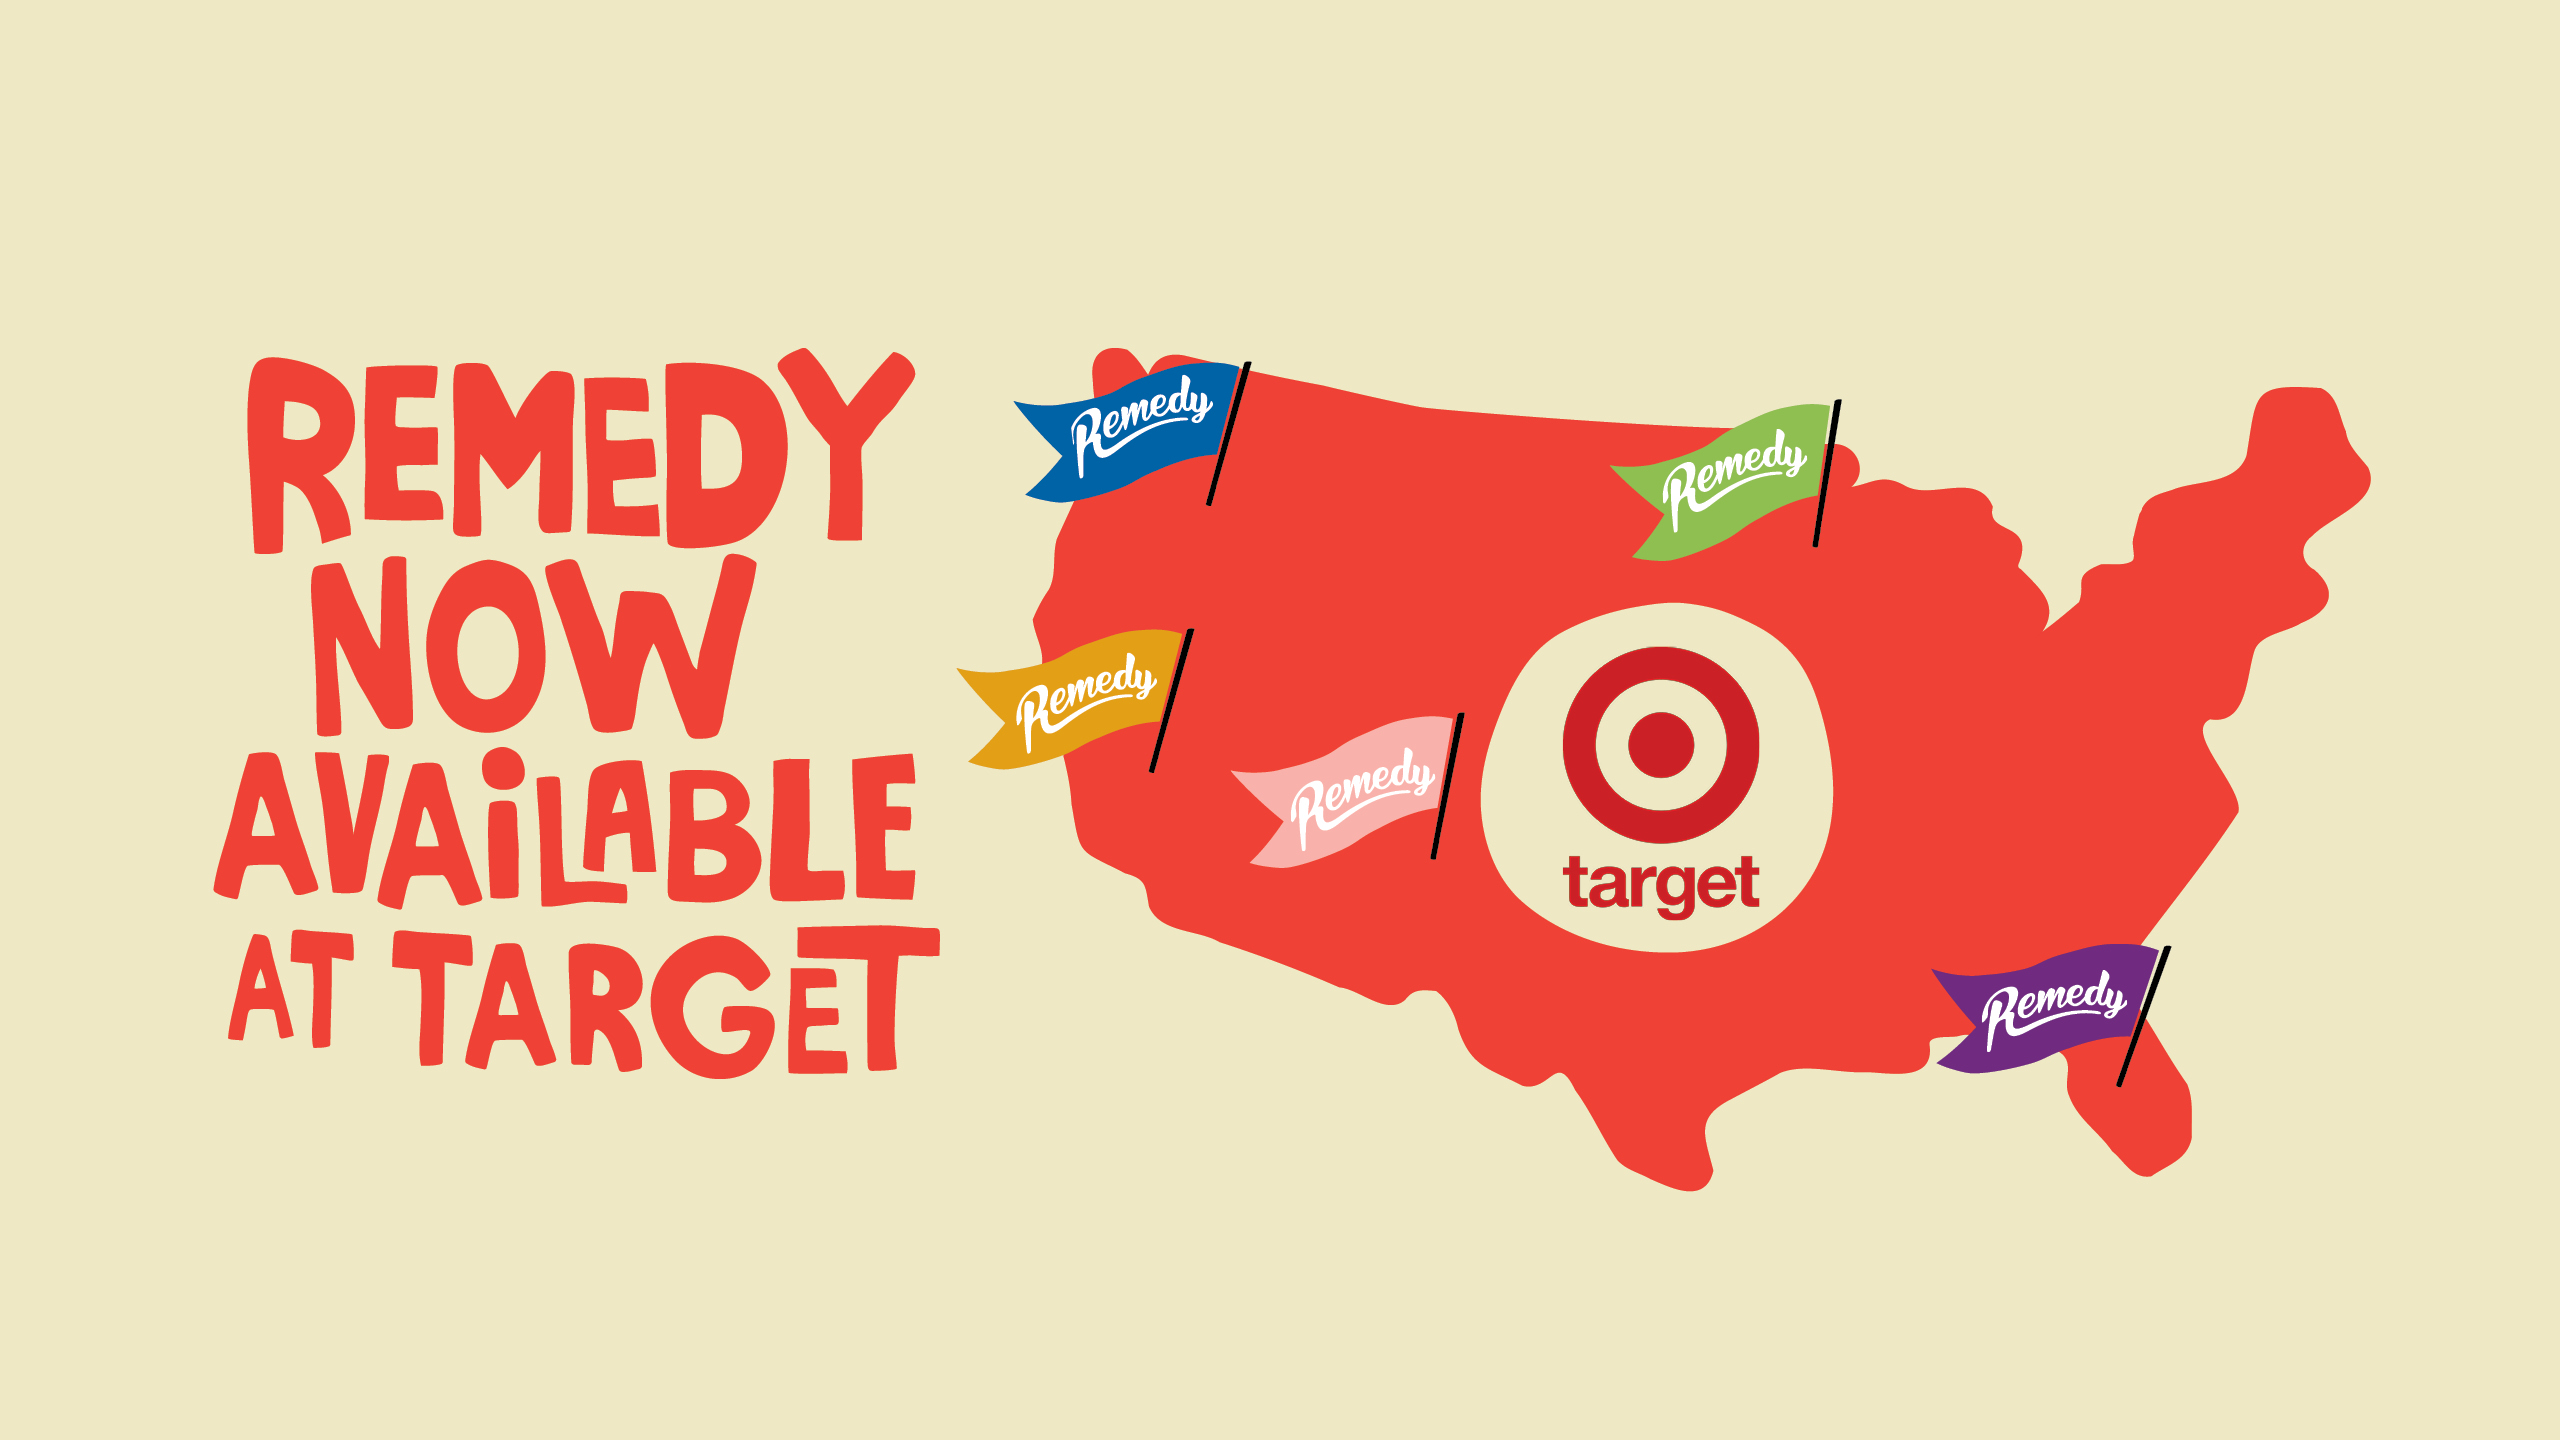 Map of USA with Remedy flags in Target locations stocking Remedy